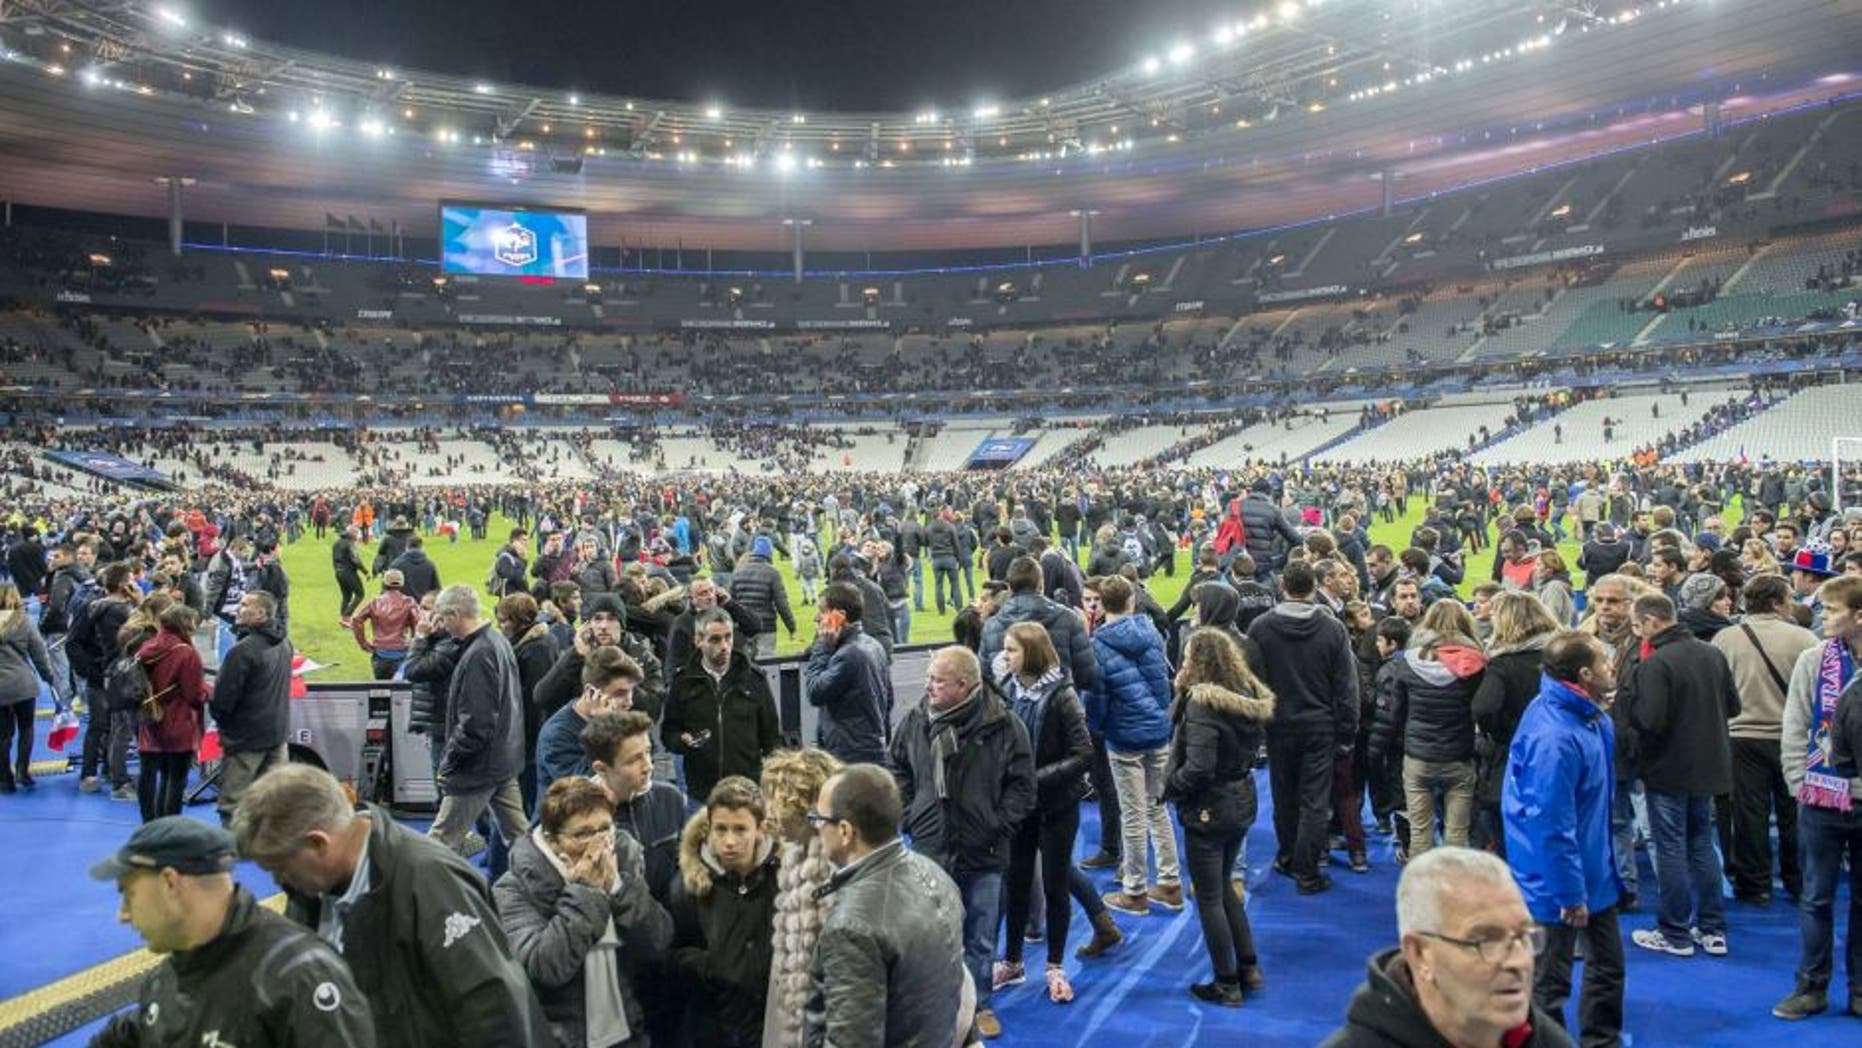 supporters run in panic on the pitch during the International friendly match between France and Germany on November 13, 2015 at the Stade France in Paris, France.(Photo by VI Images via Getty Images)